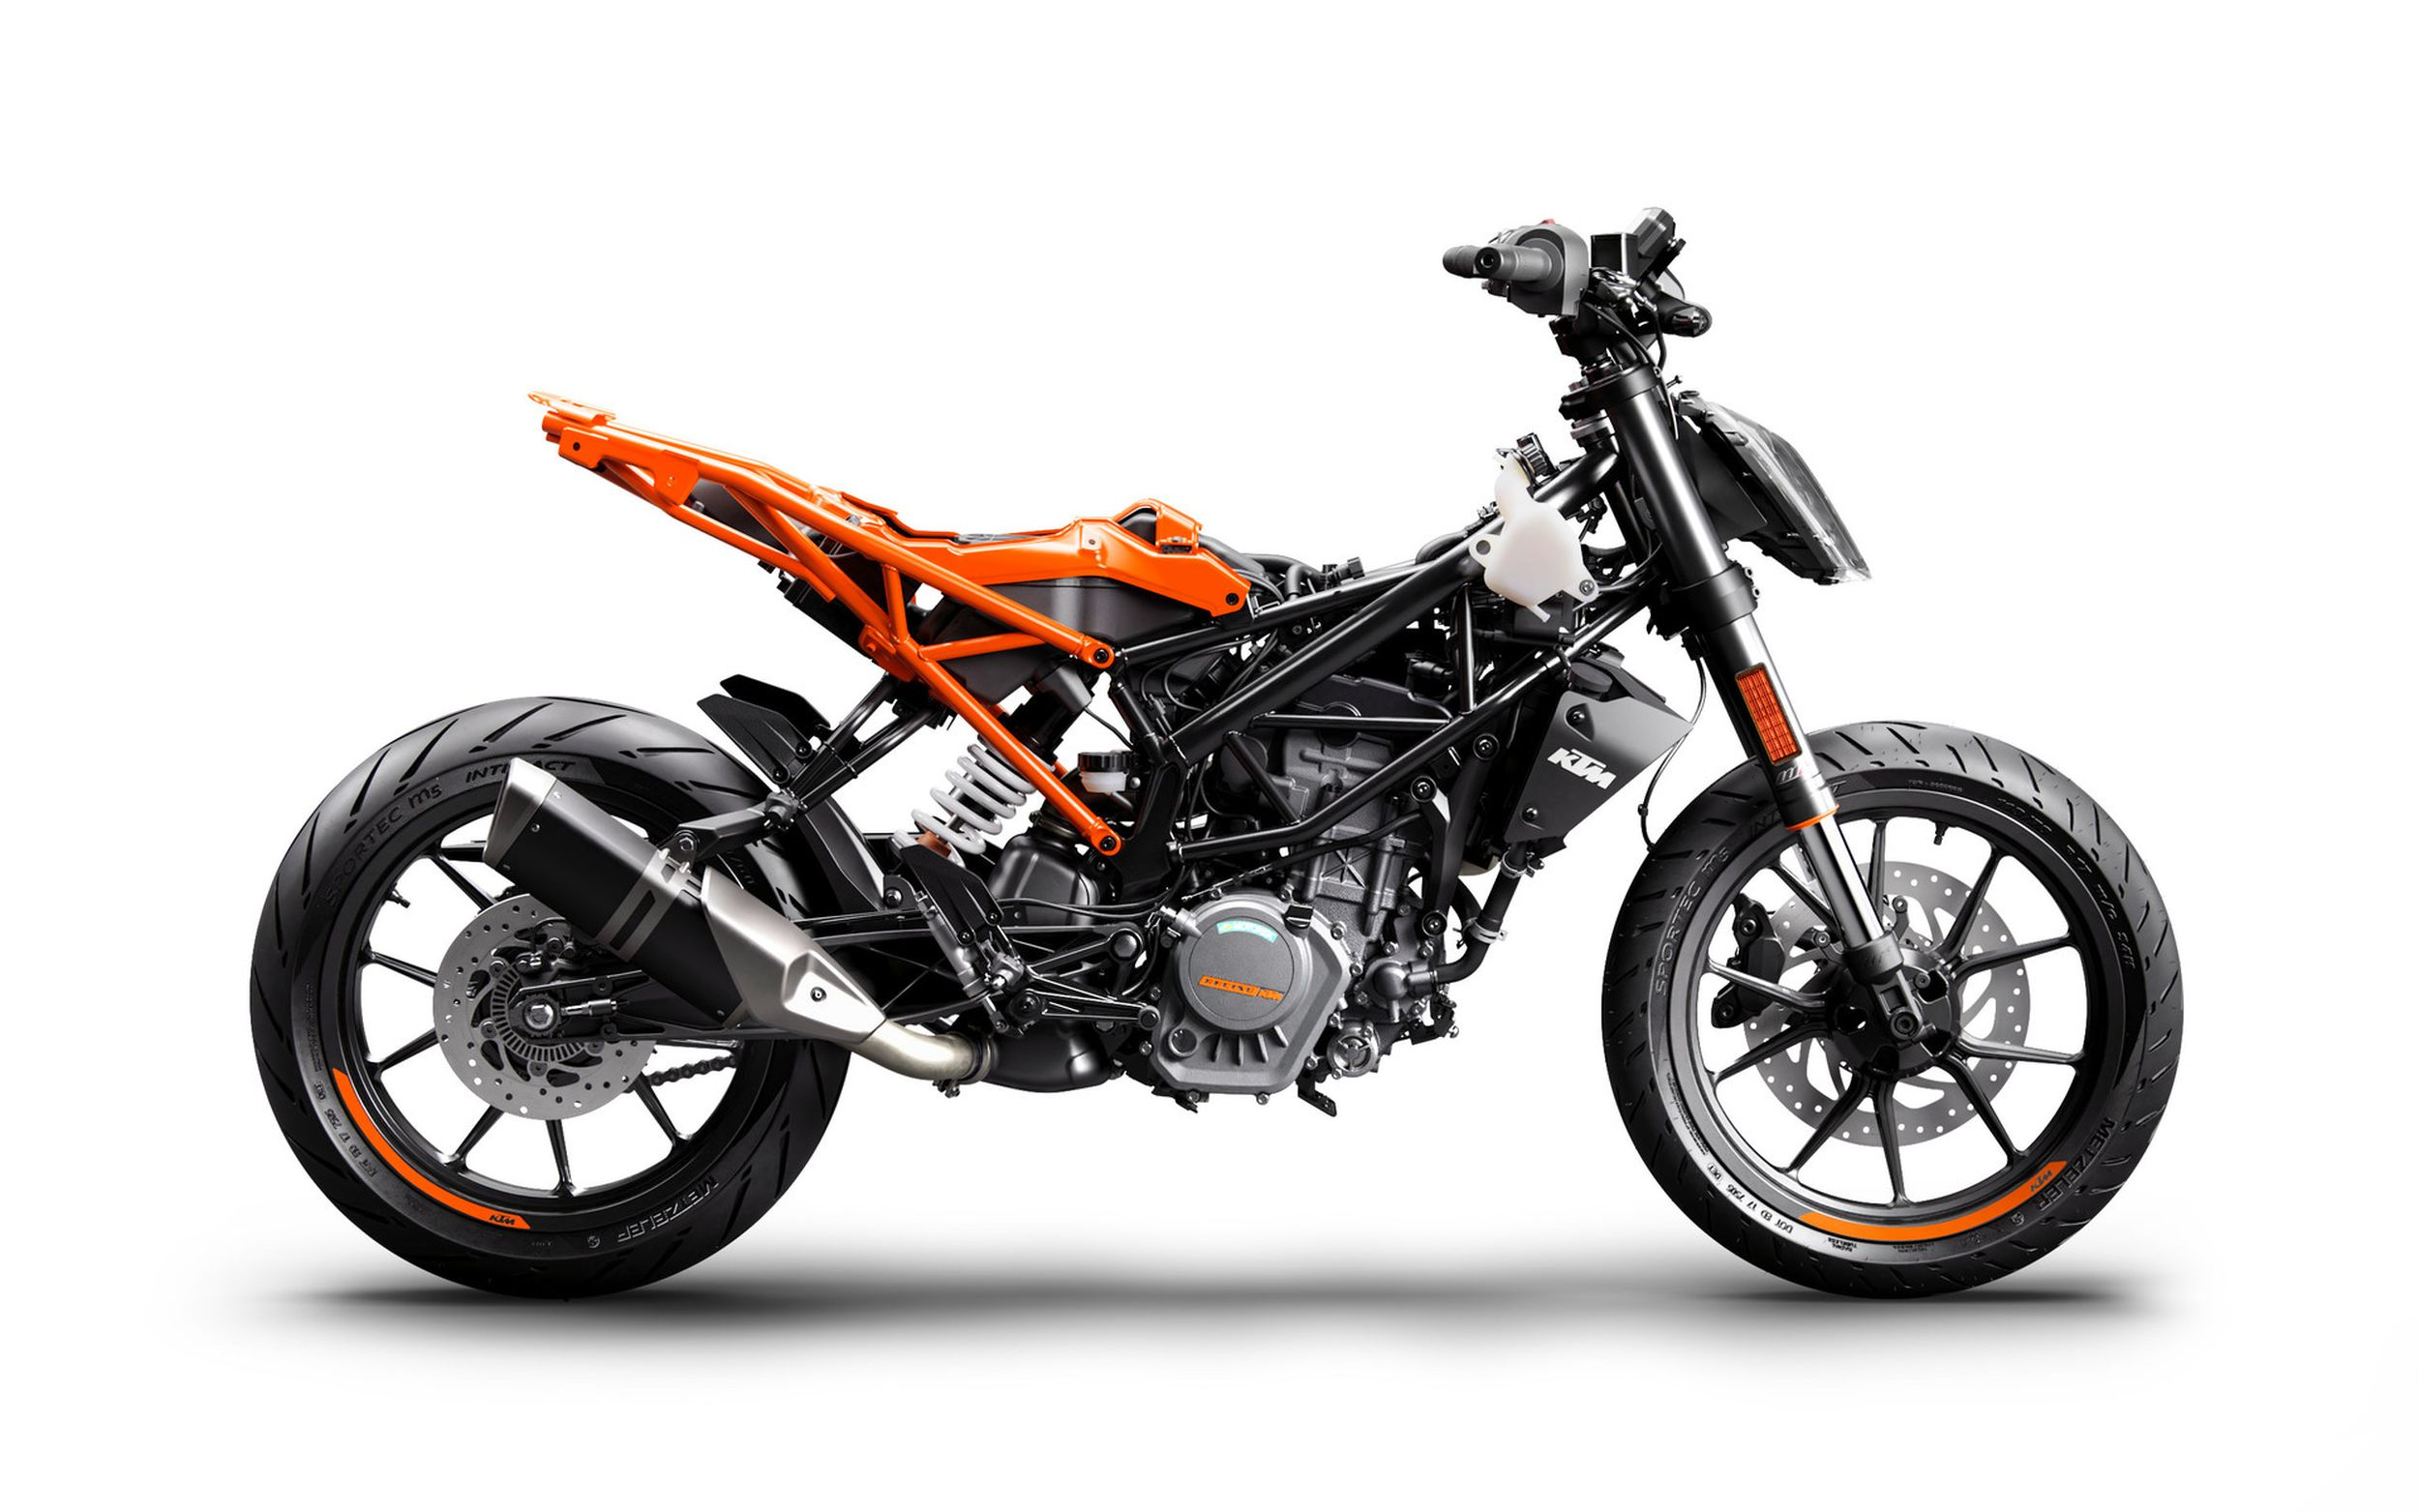 ktm 125 duke all technical data of the model 125 duke. Black Bedroom Furniture Sets. Home Design Ideas